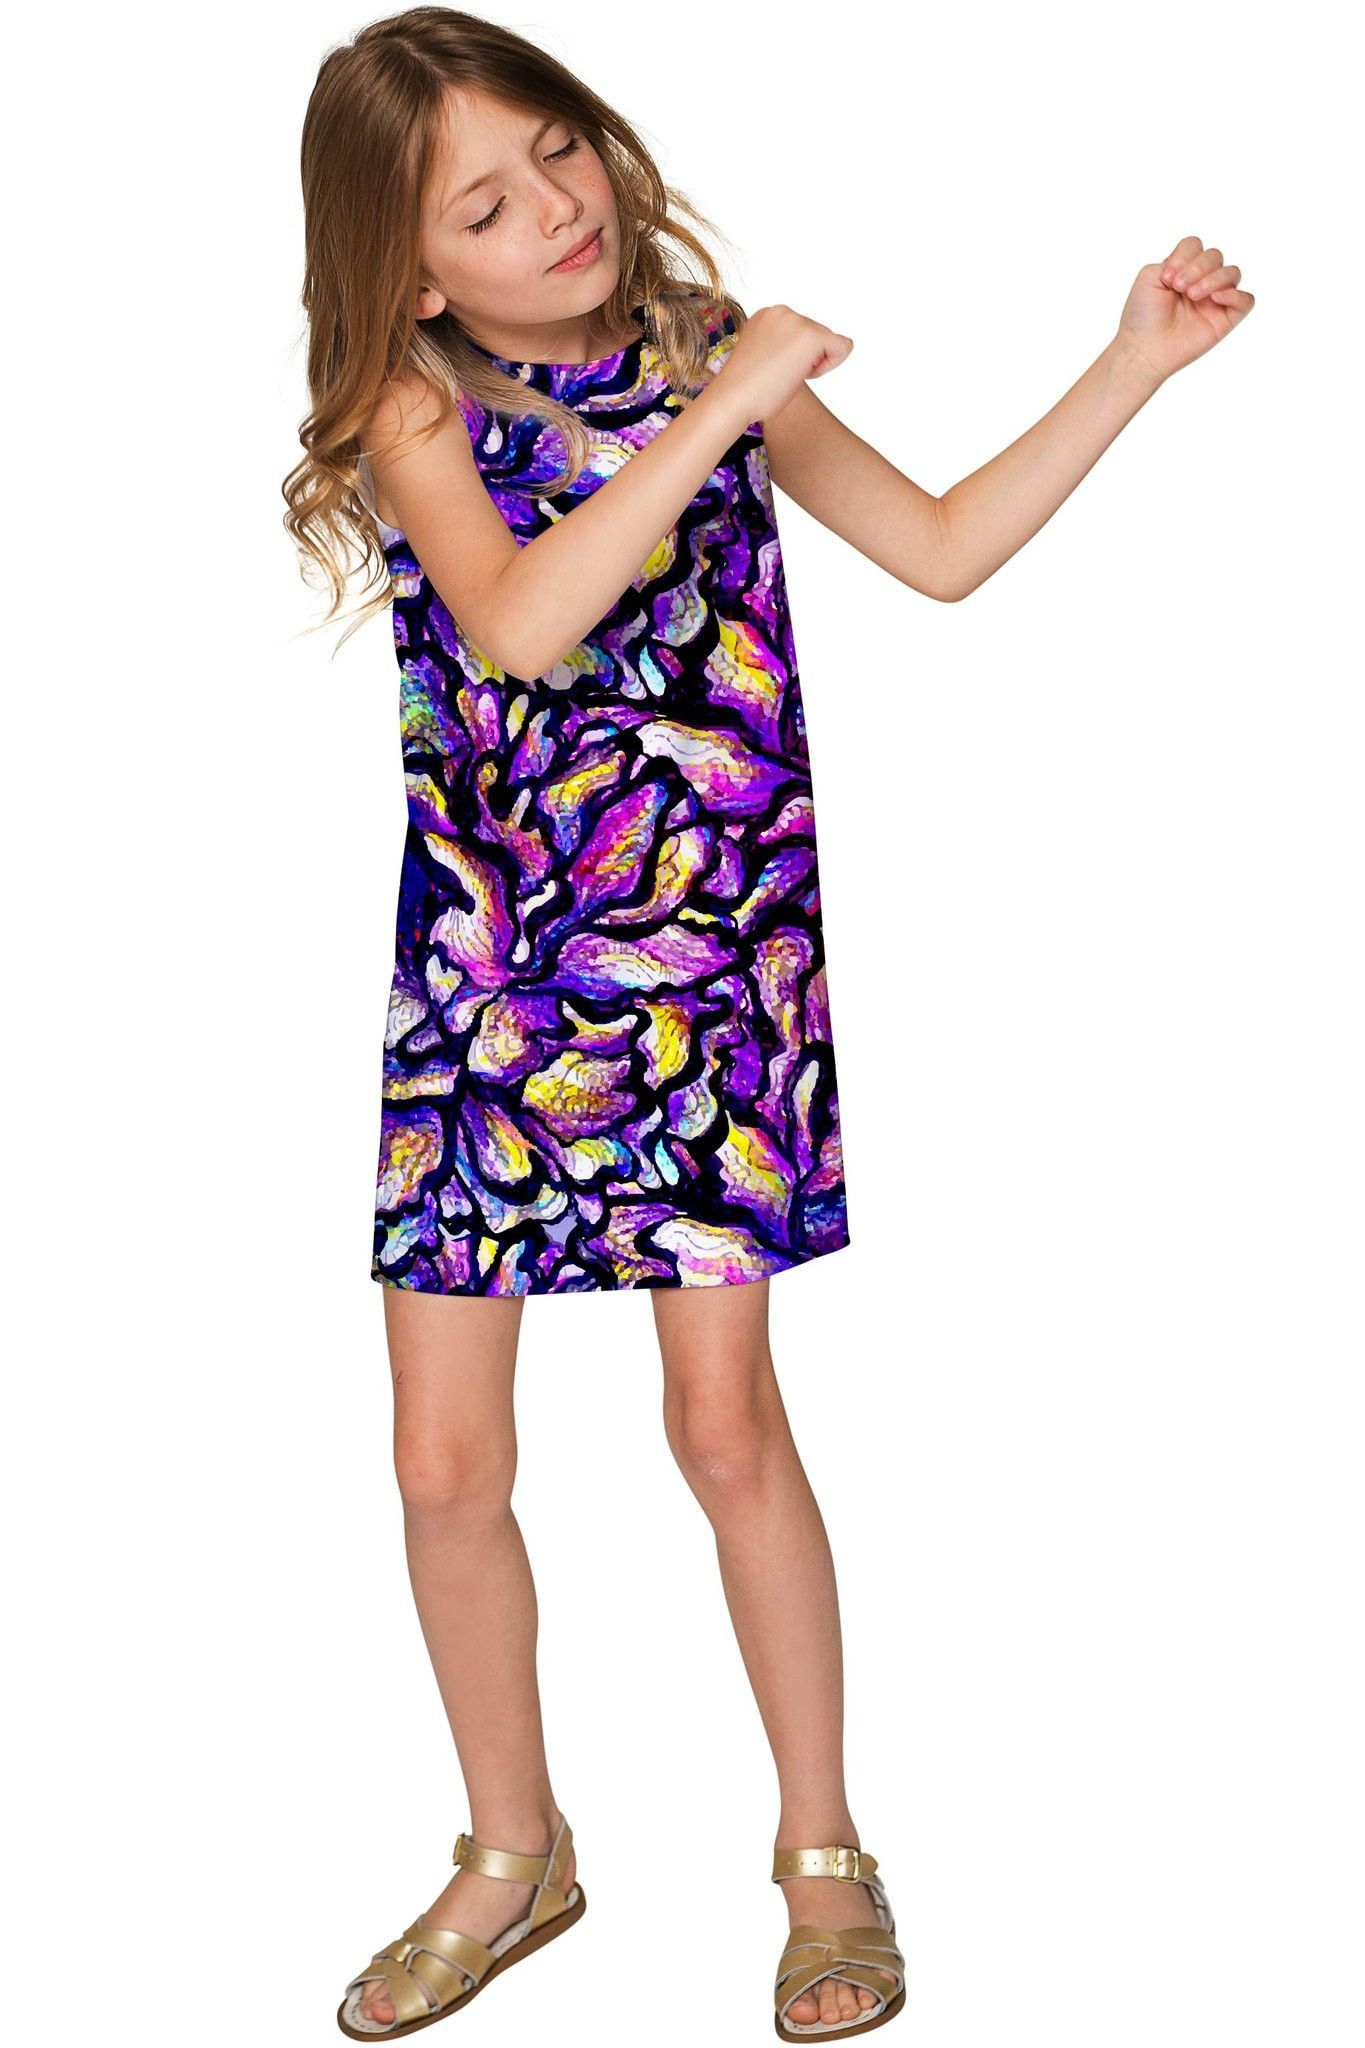 Make a Wish Adele Purple Printed Shift Party Dress - Girls ...